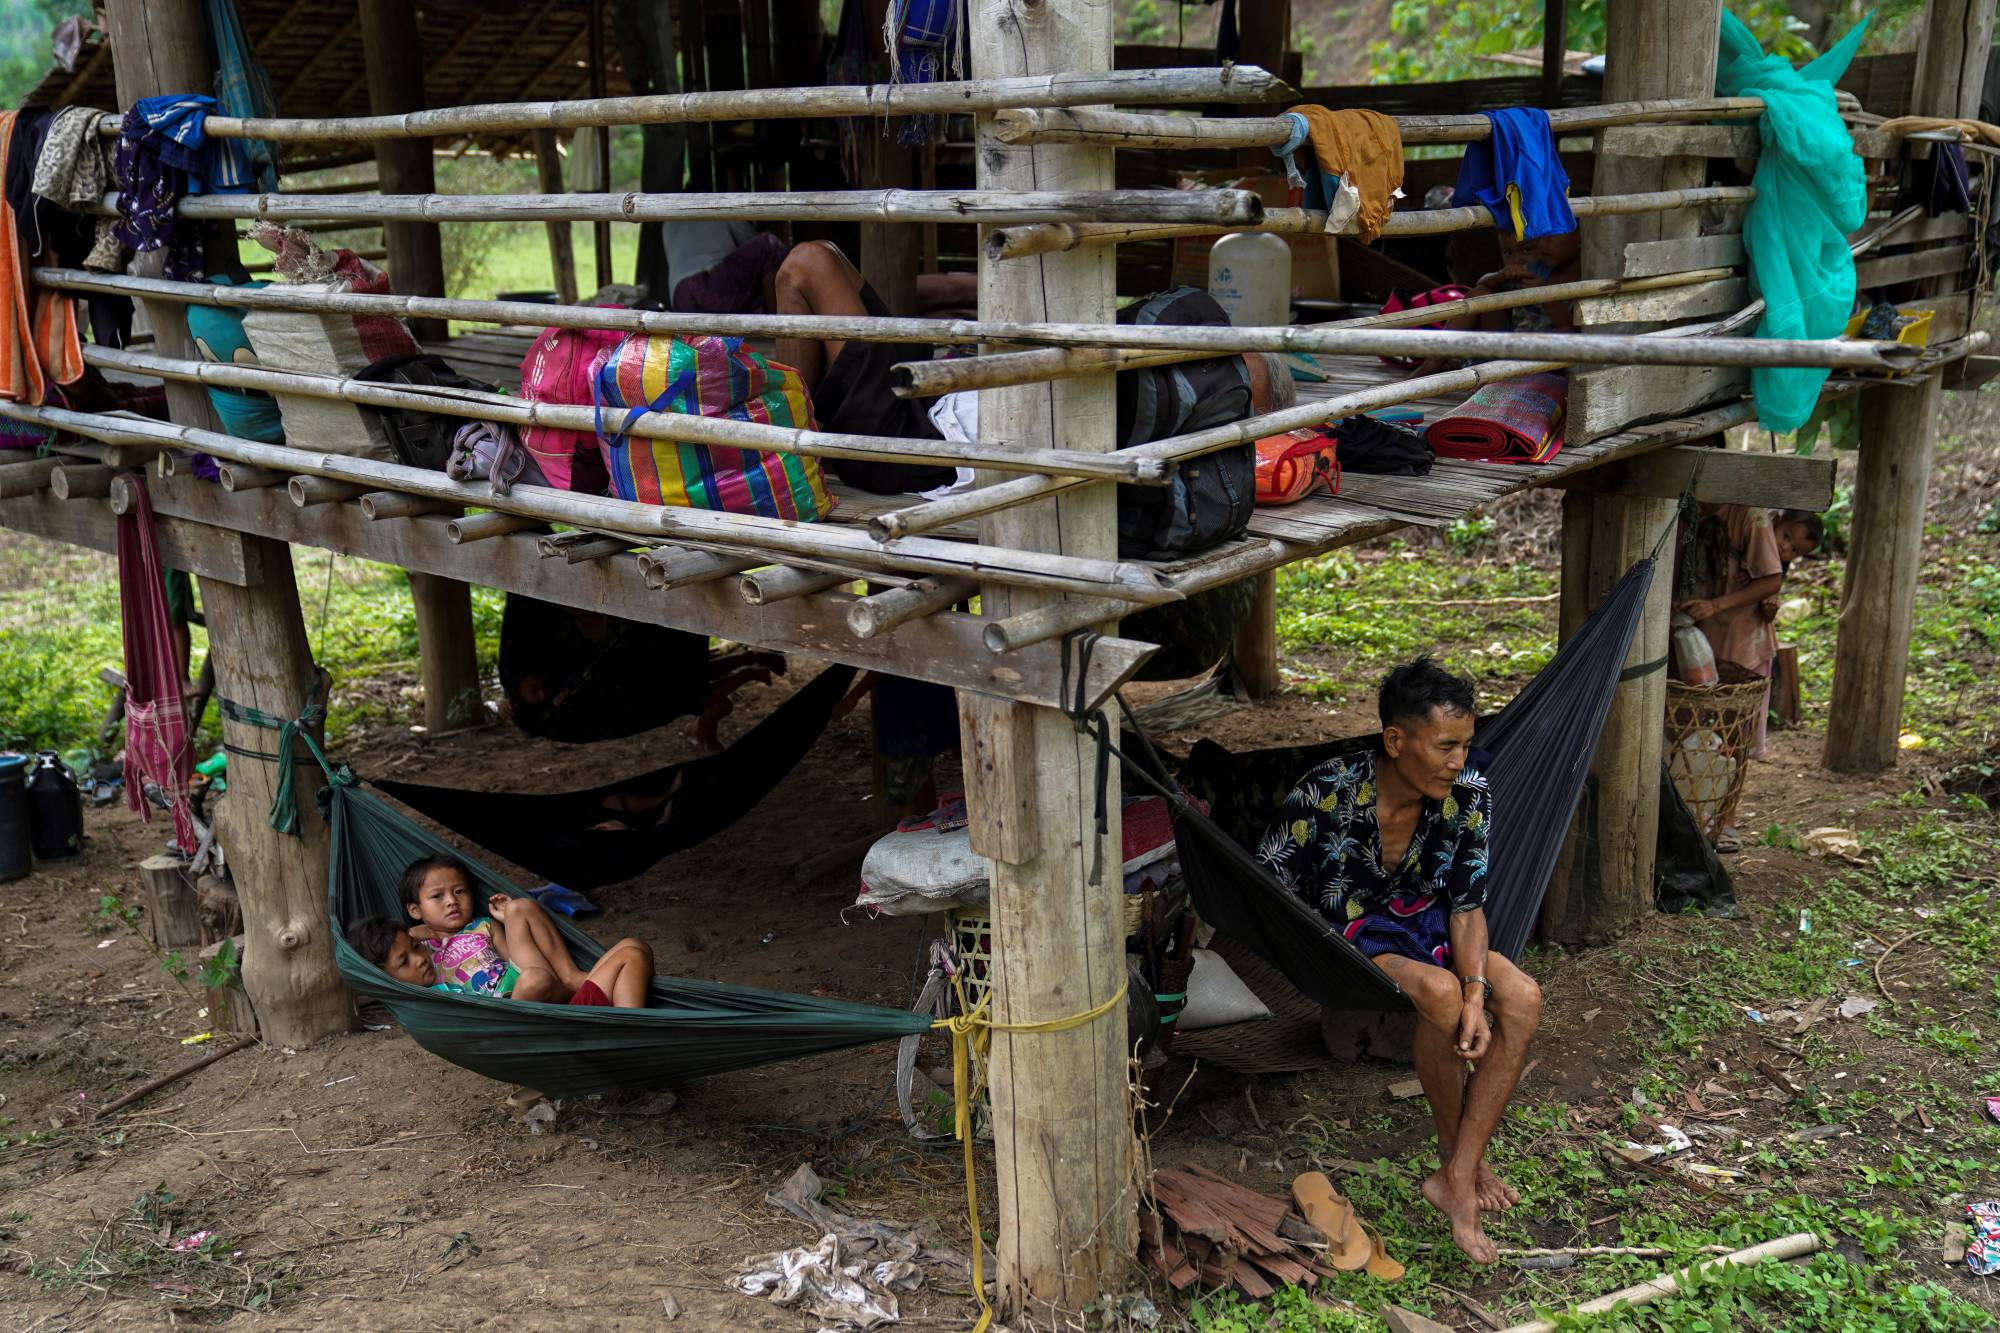 Villagers who fled Myanmar's Ee Thu Hta displacement camp rest in Mae Hong Son province, Thailand, on Thursday, after fleeing from gunfire between ethnic minority Karen insurgents and the Myanmar military. | REUTERS